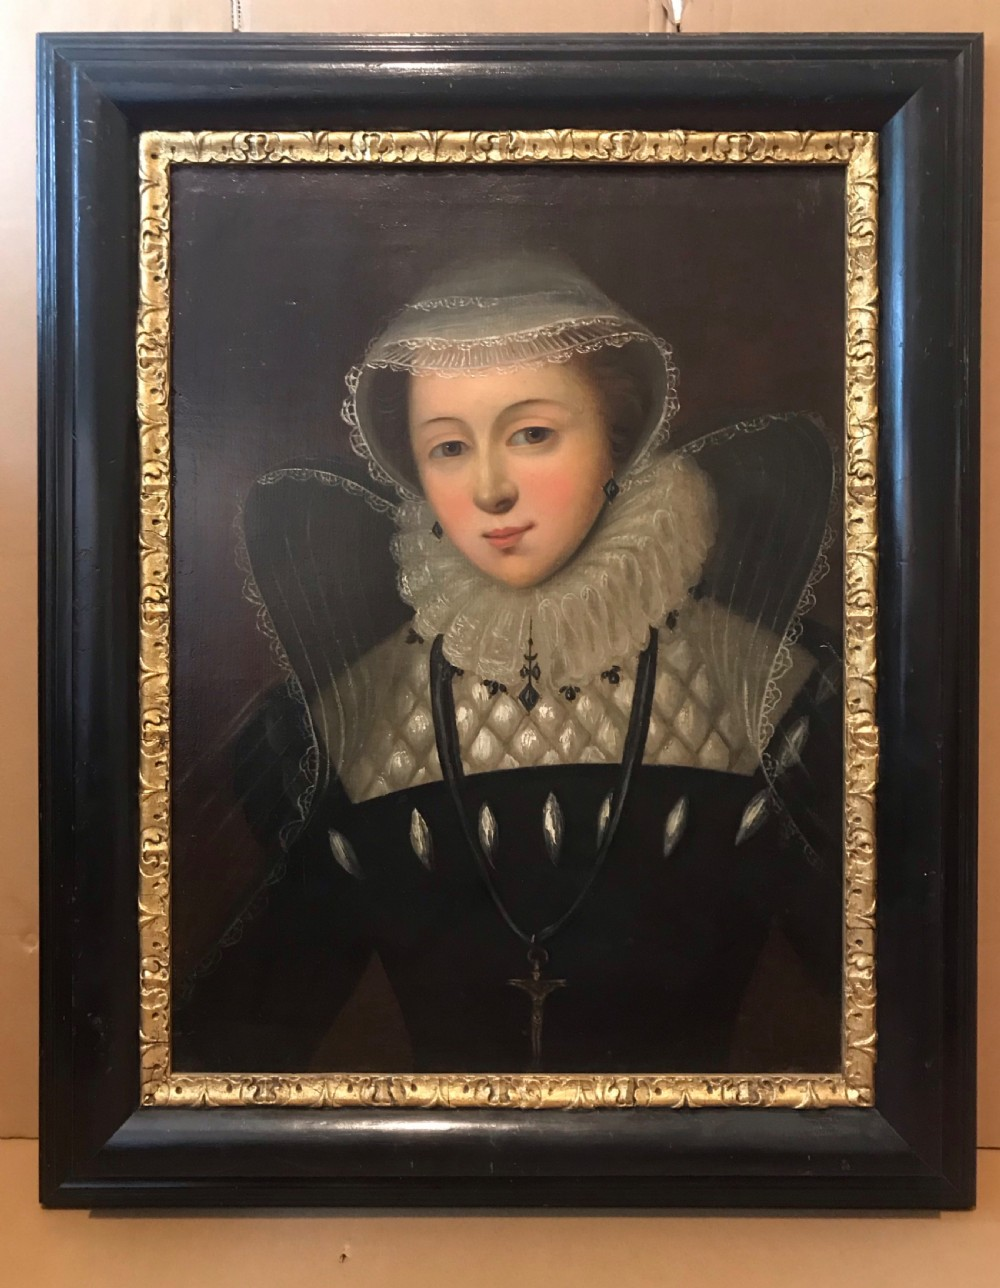 mary queen of scots after nicholas hilliard 18thc oil portrait painting